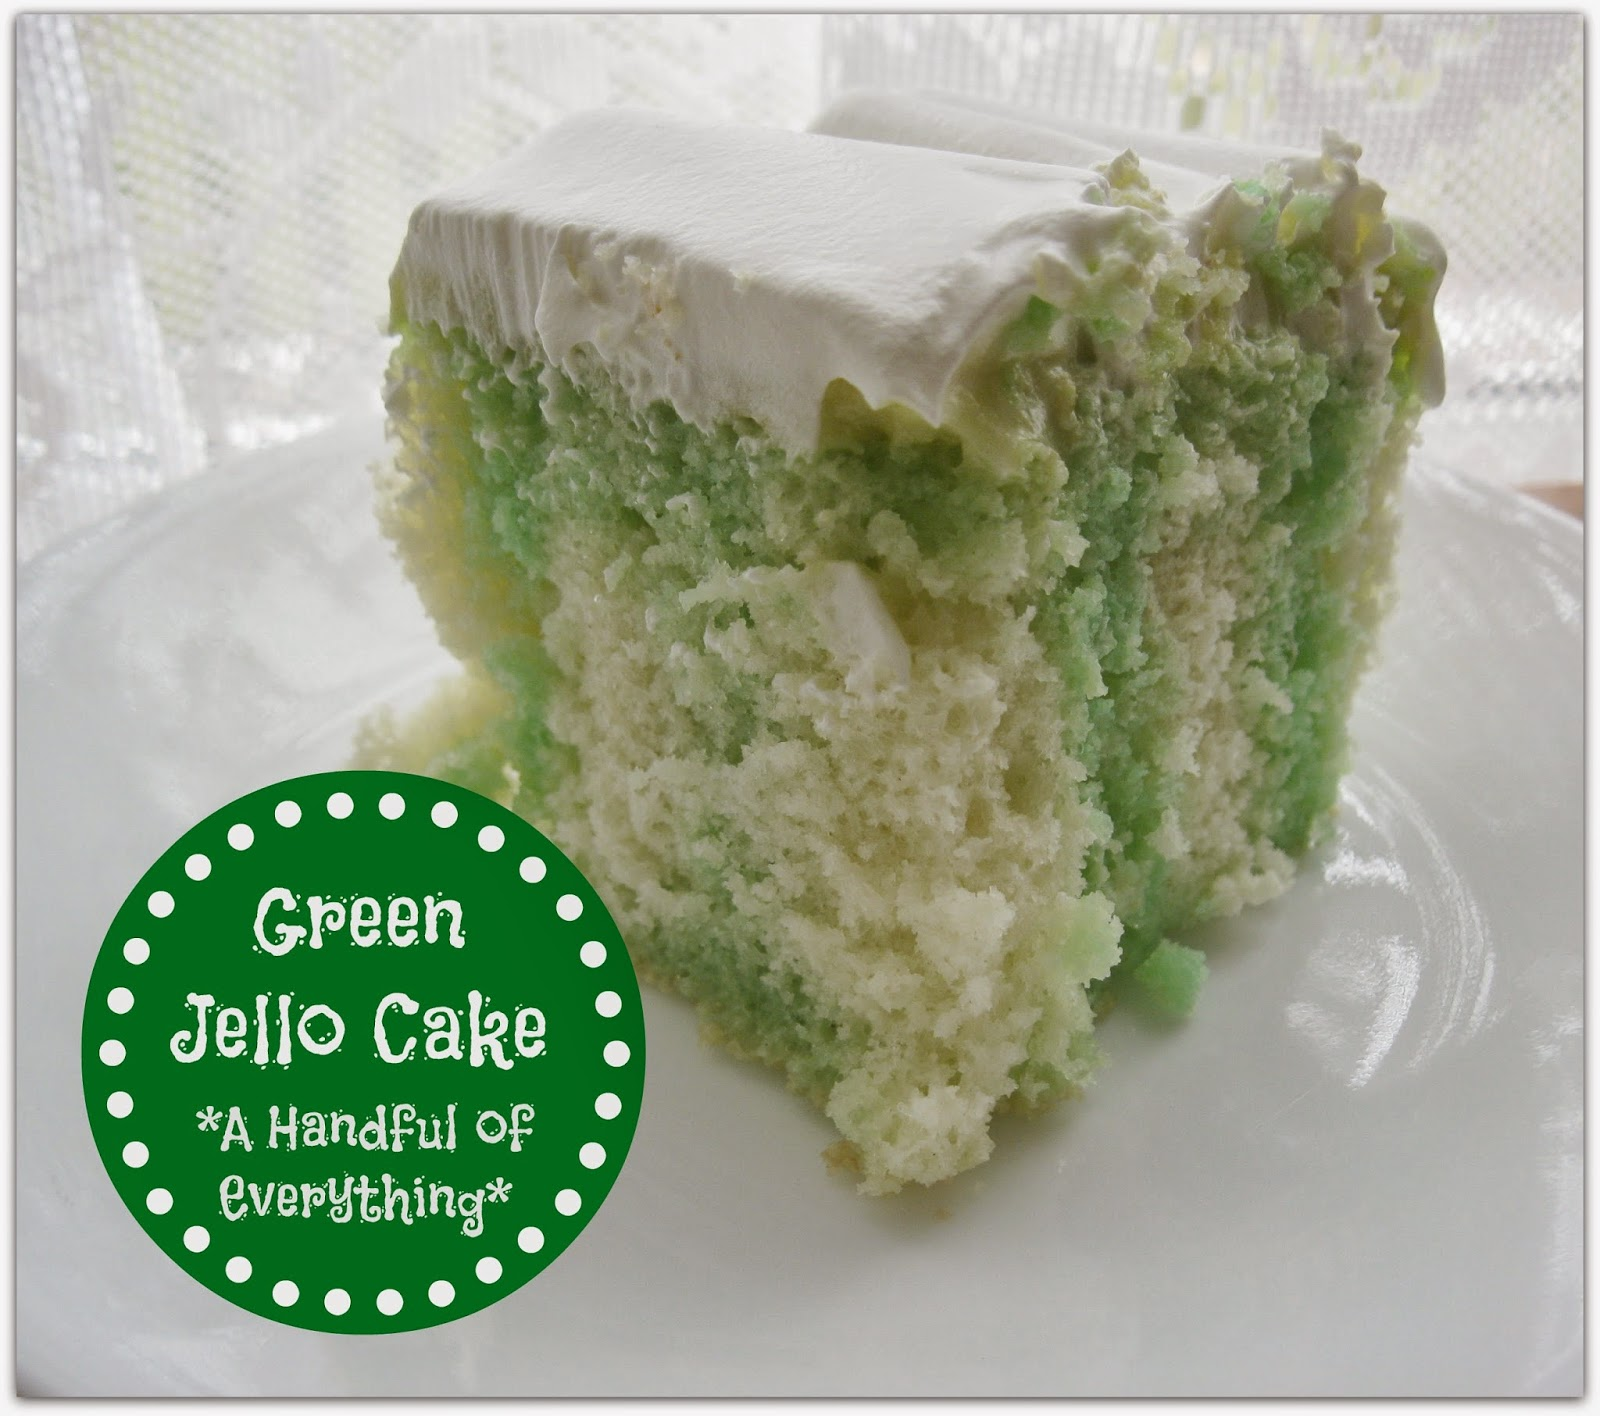 A Handful Of Everything: Green Jello Cake